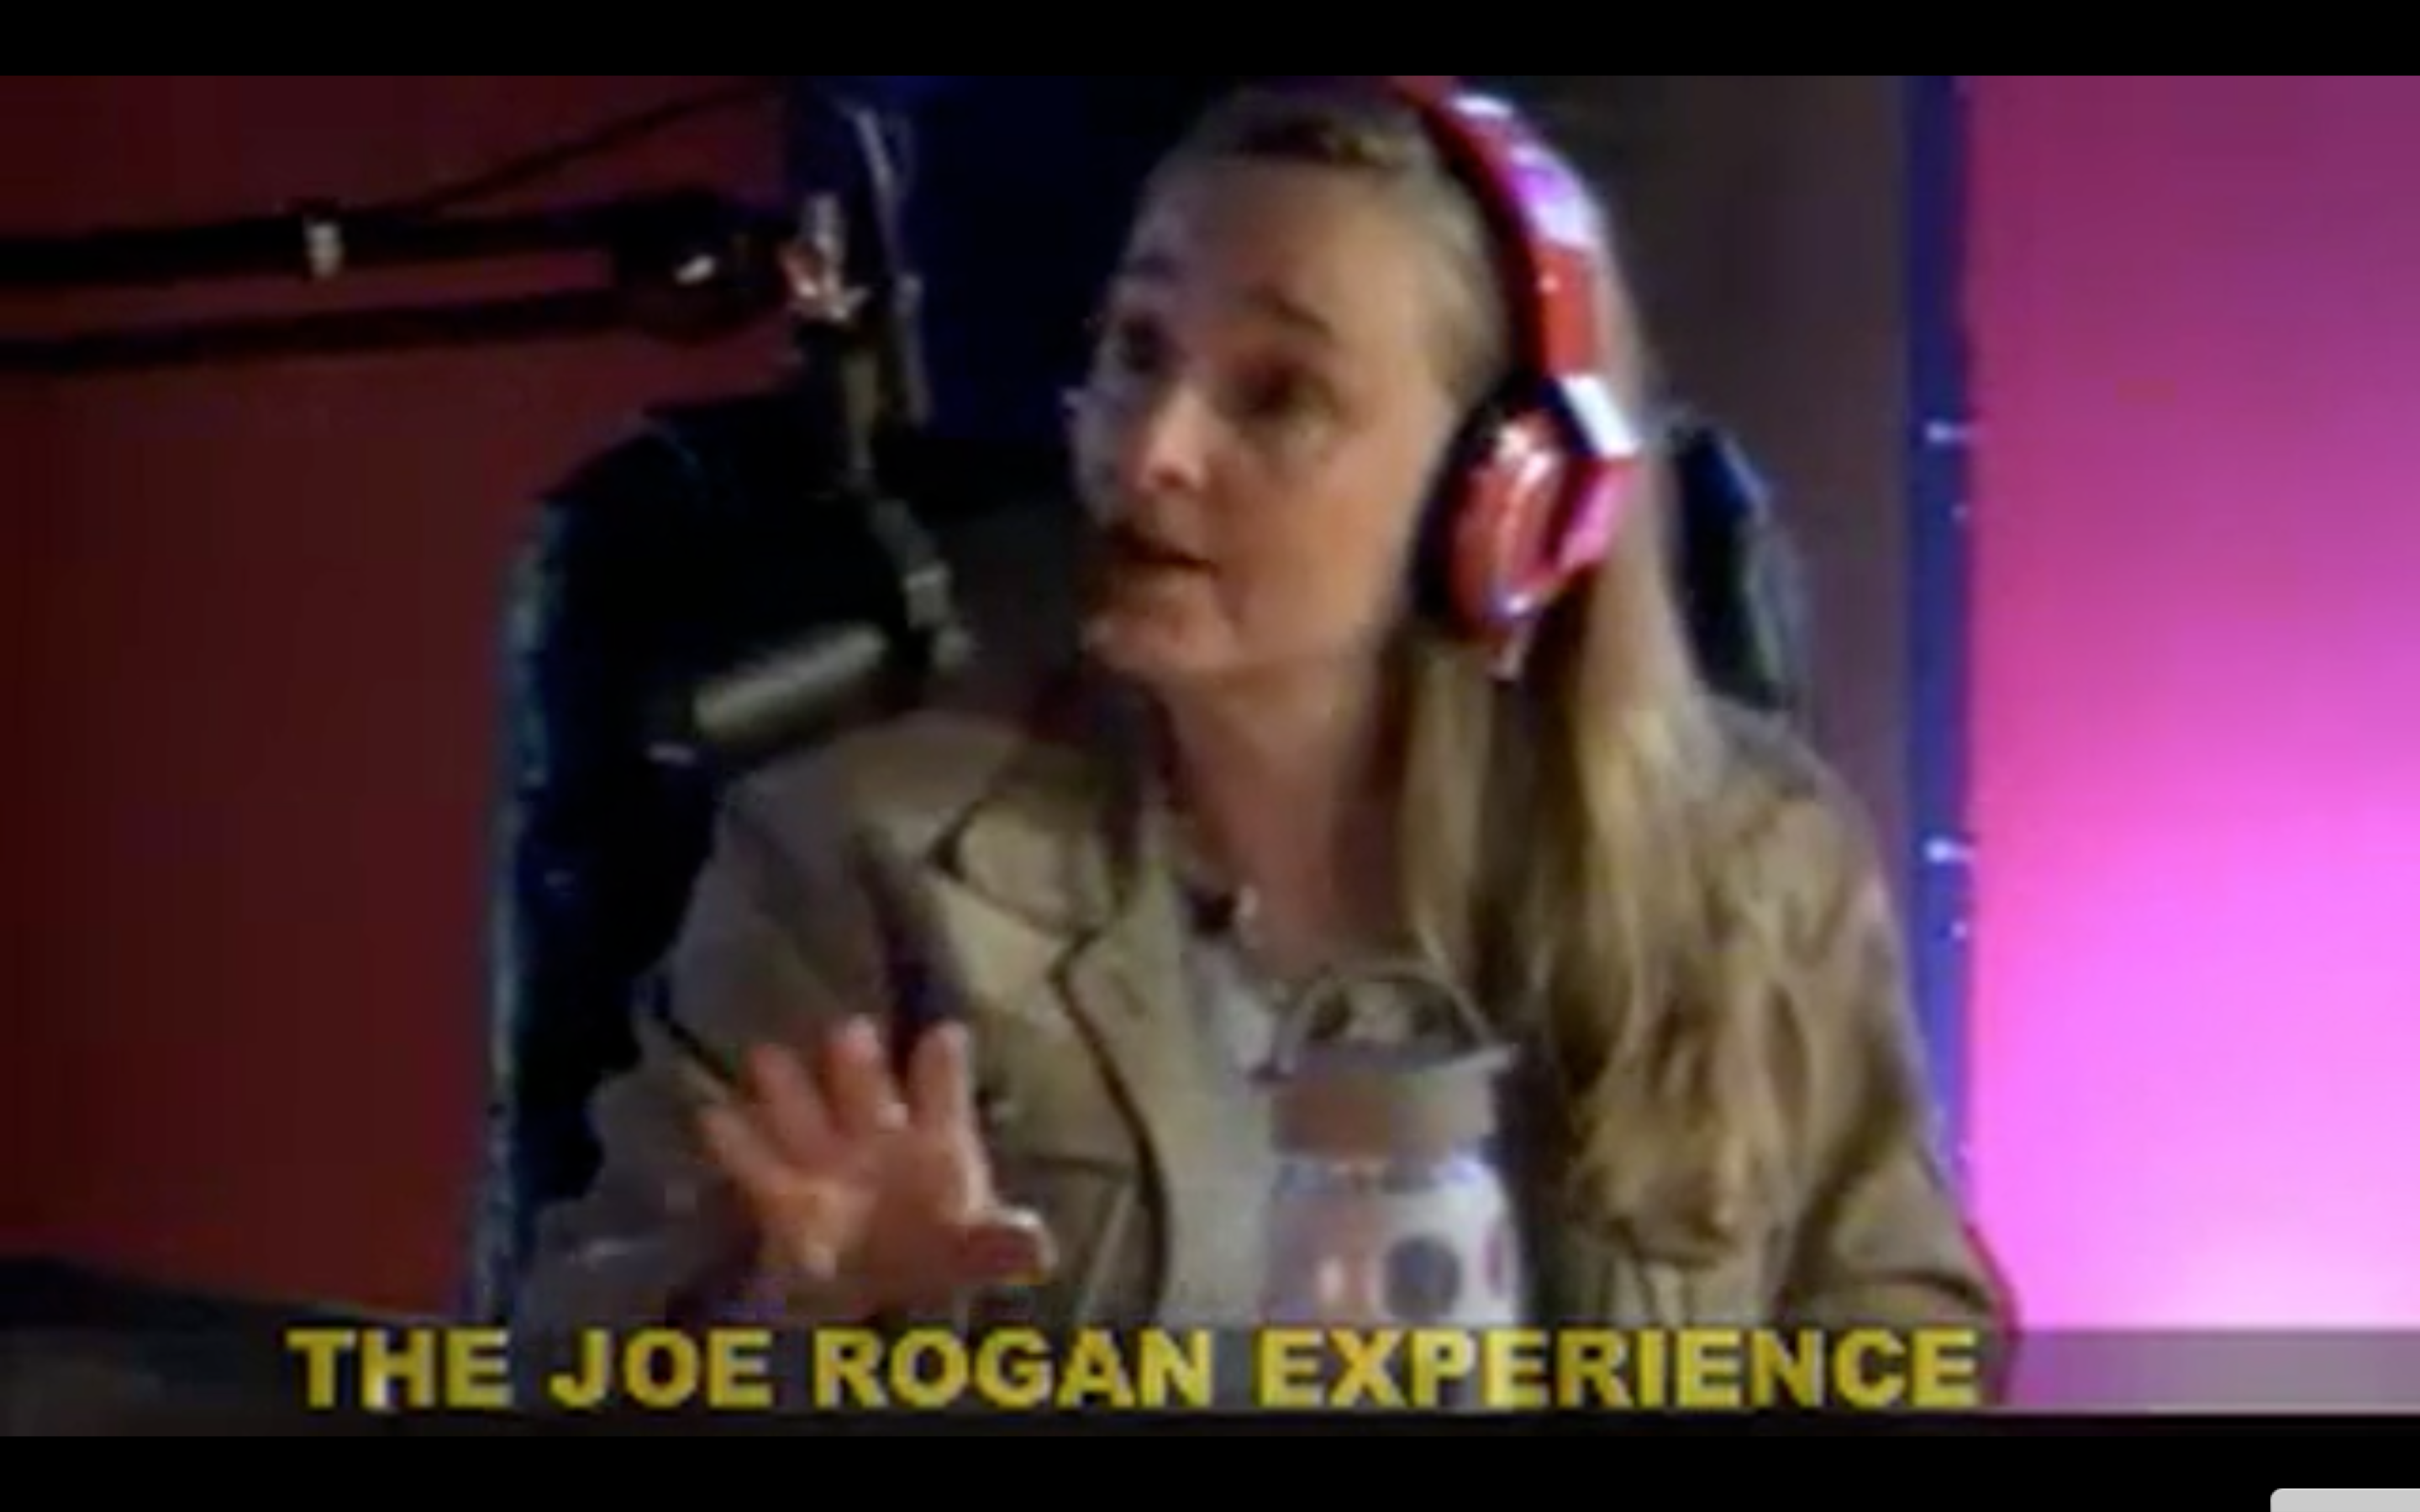 The Joe Rogan Experience #321 - Melissa Etheridge, Brian Redban